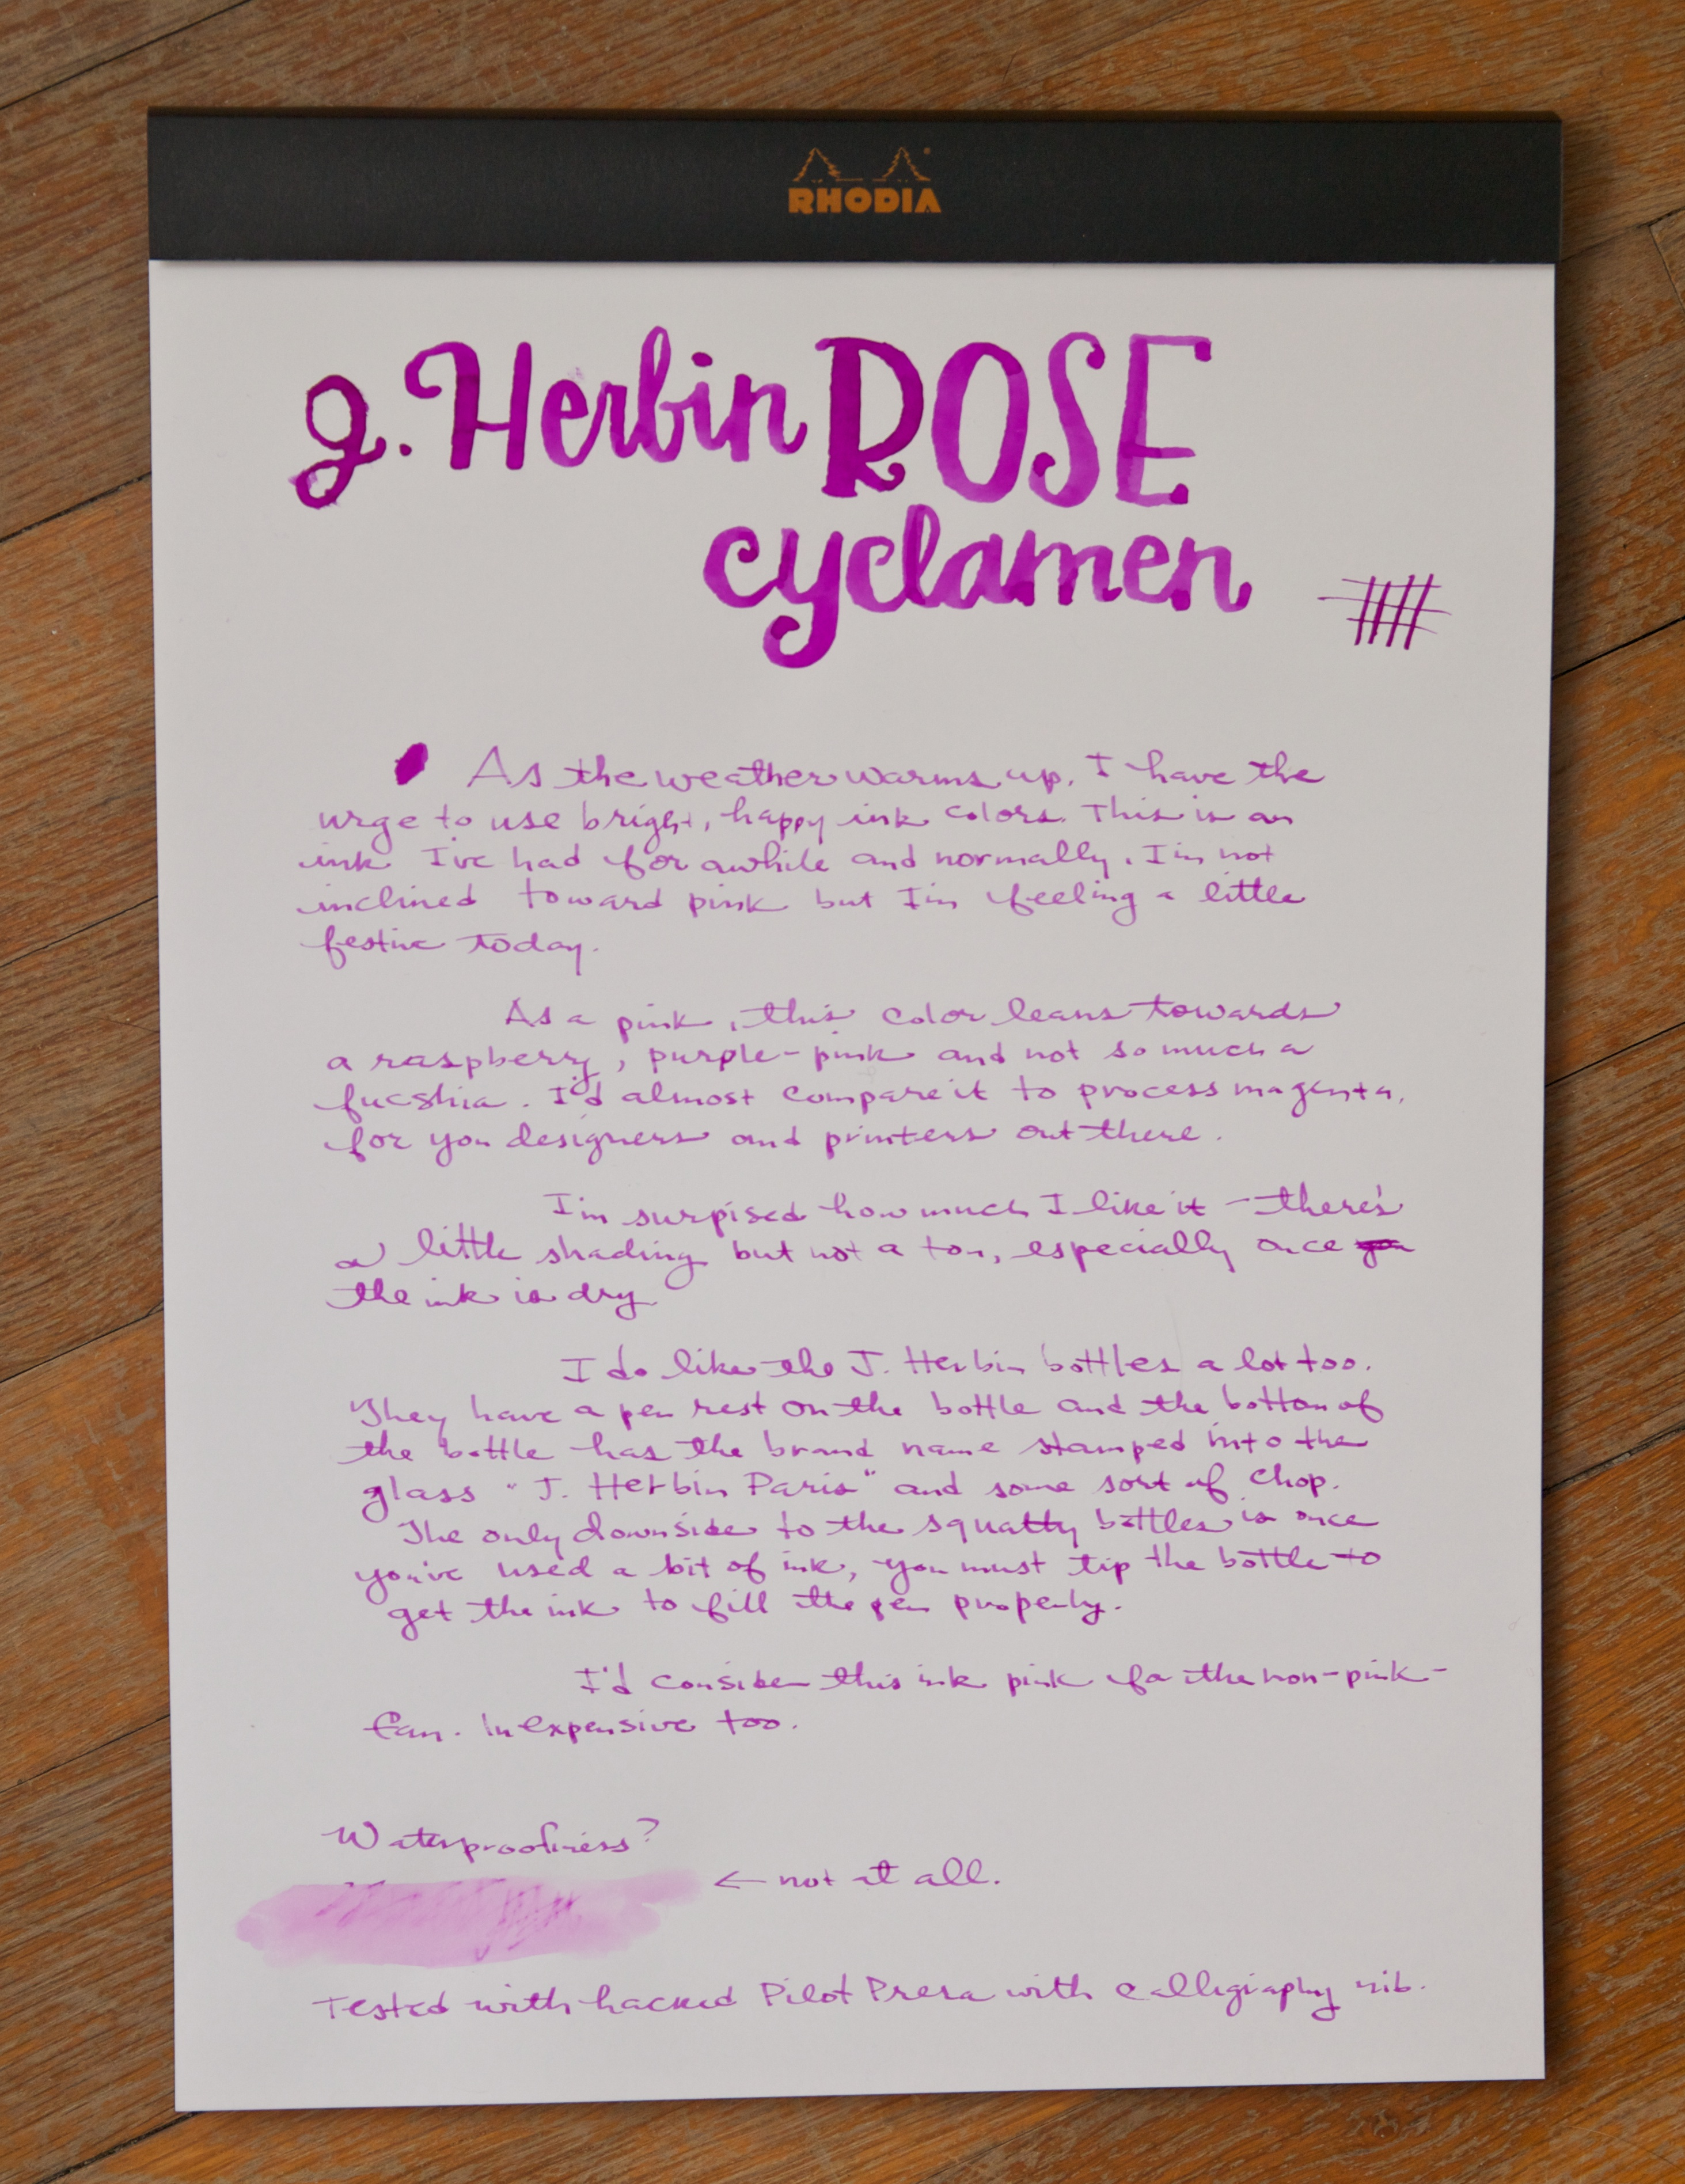 J. Herbin Rose Cyclamen Ink writing sample